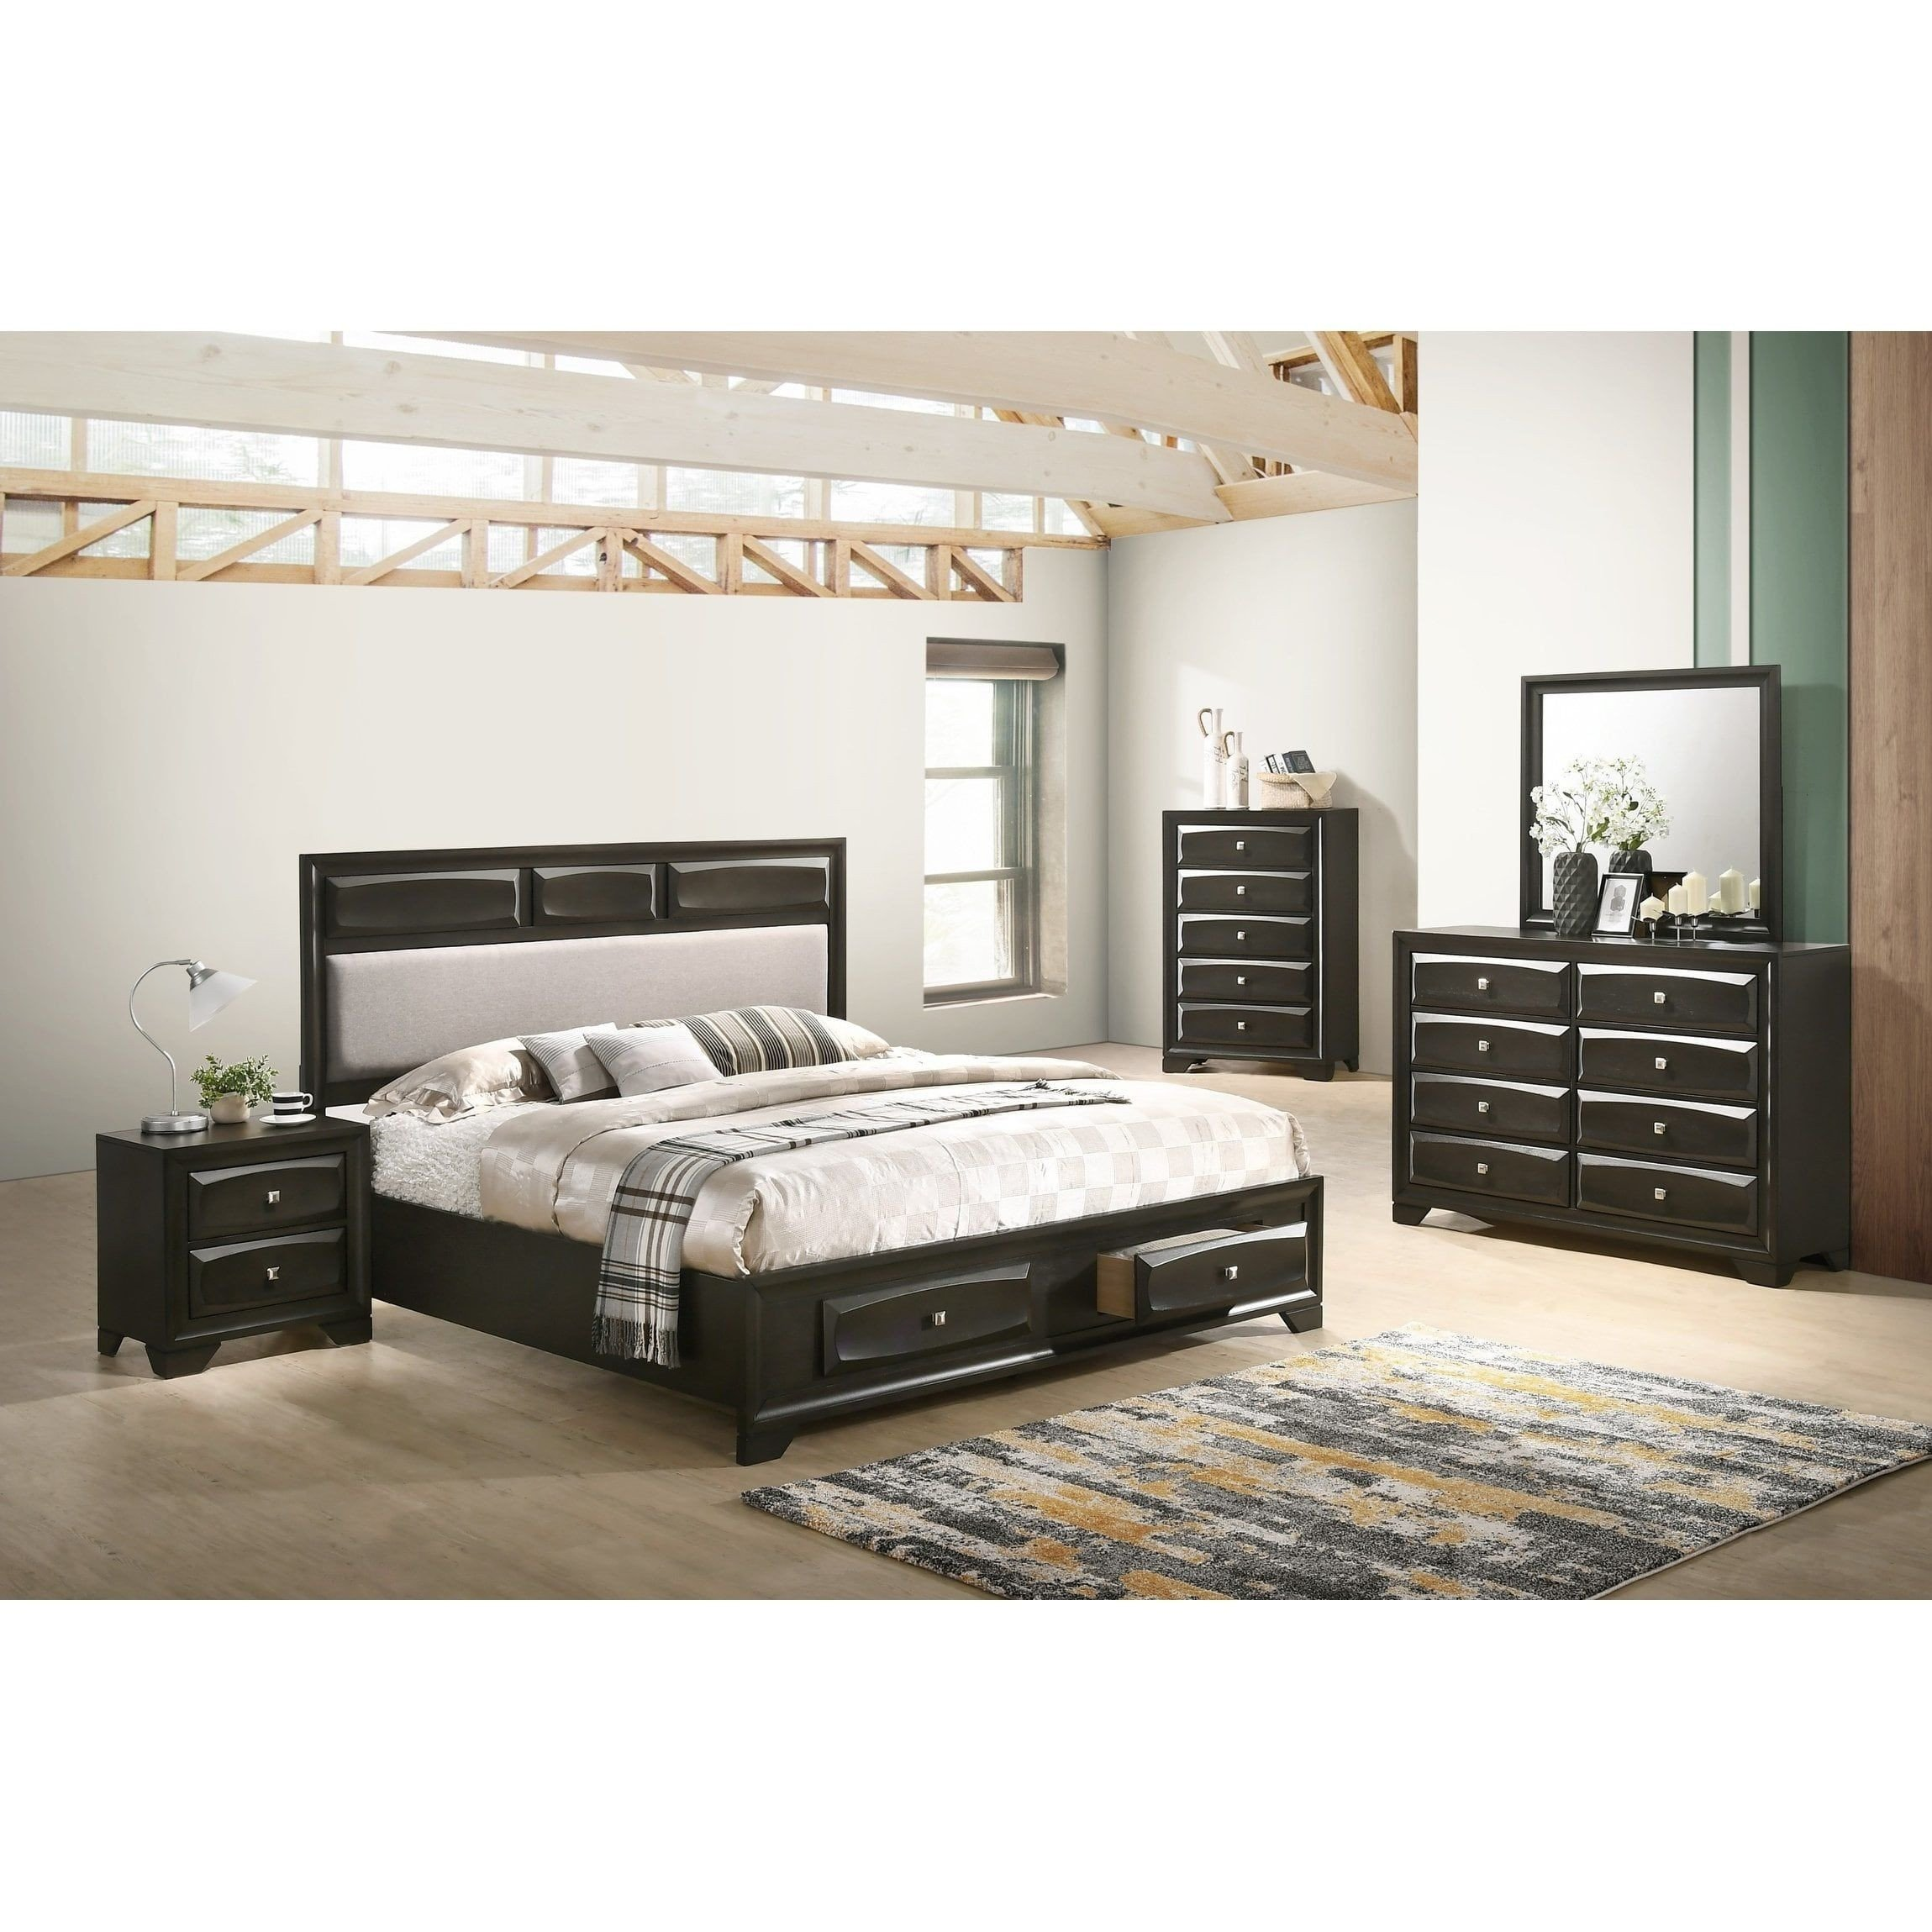 5 Piece Bedroom Set Awesome Oakland Antique Gray Finish Wood 5 Pc King Size Bedroom Set